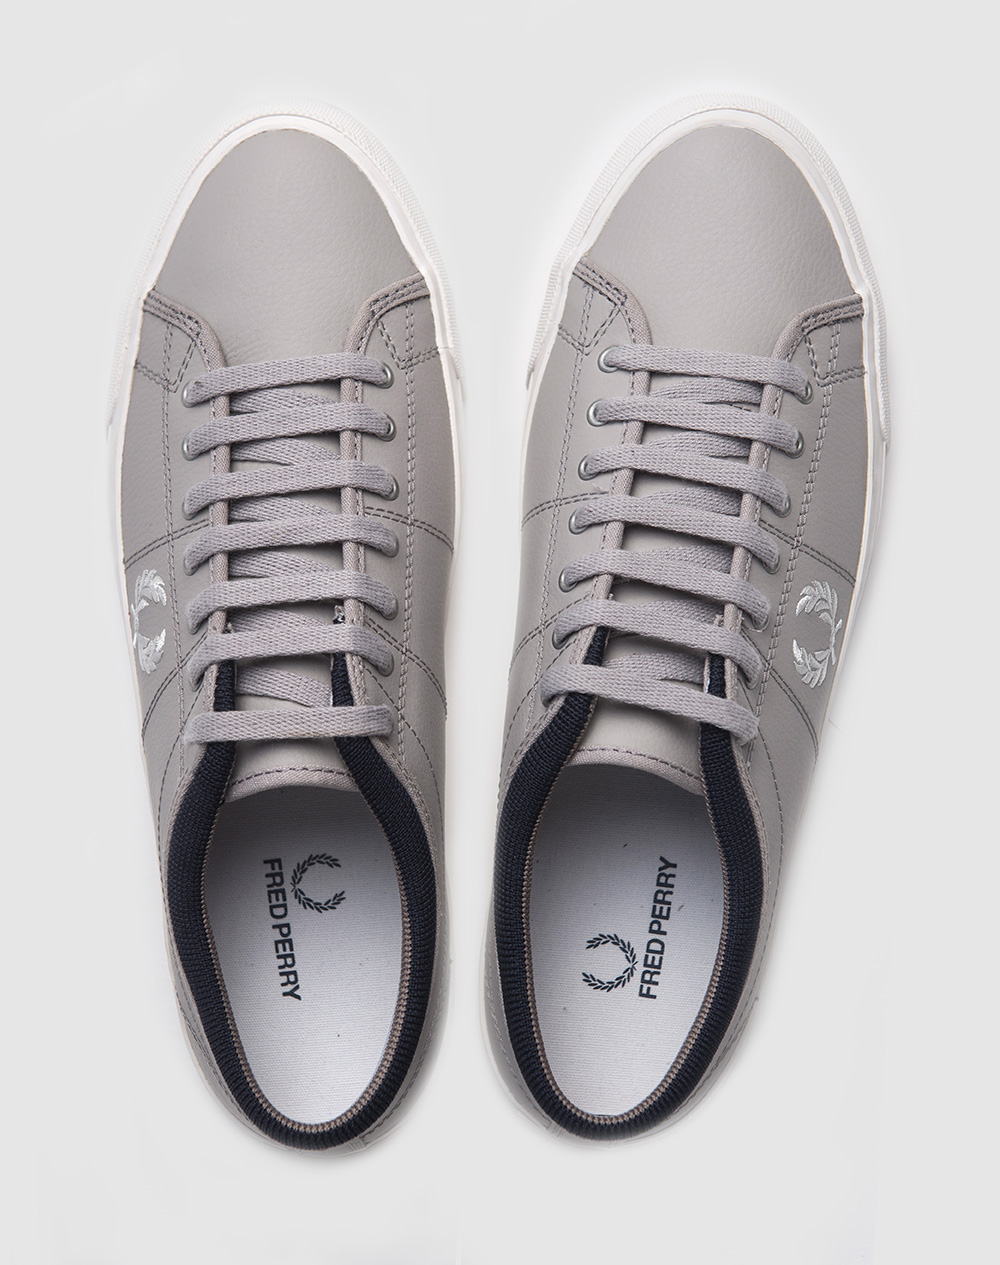 Zapatillas Fred Perry modelo Kendrick Reverses Tipped Cuff Canvas en color gris para hombre-c